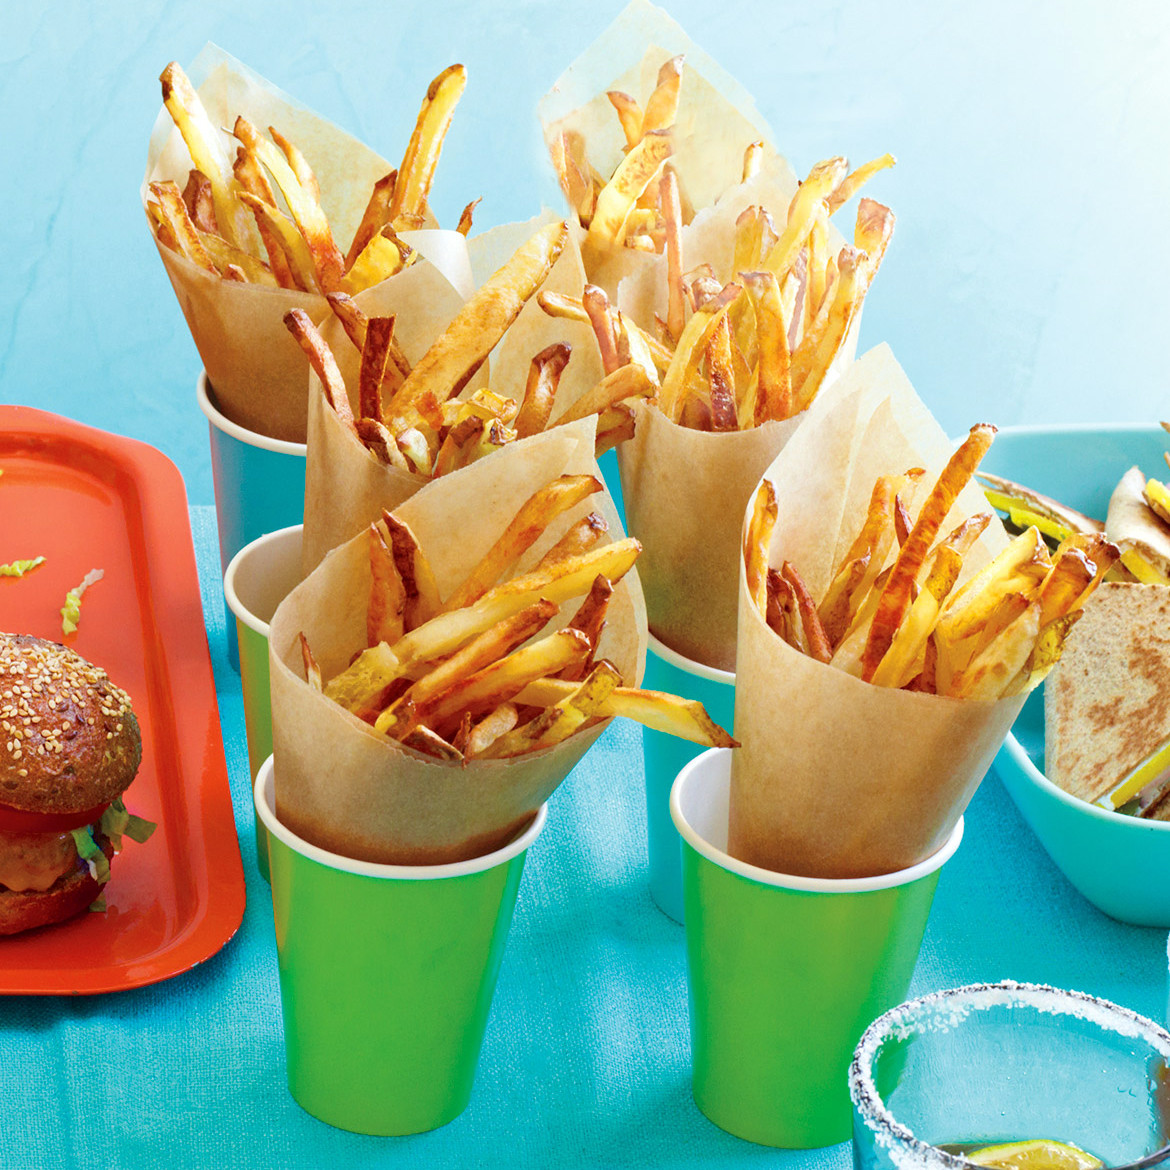 French fries in the oven. Cooking recipes 89